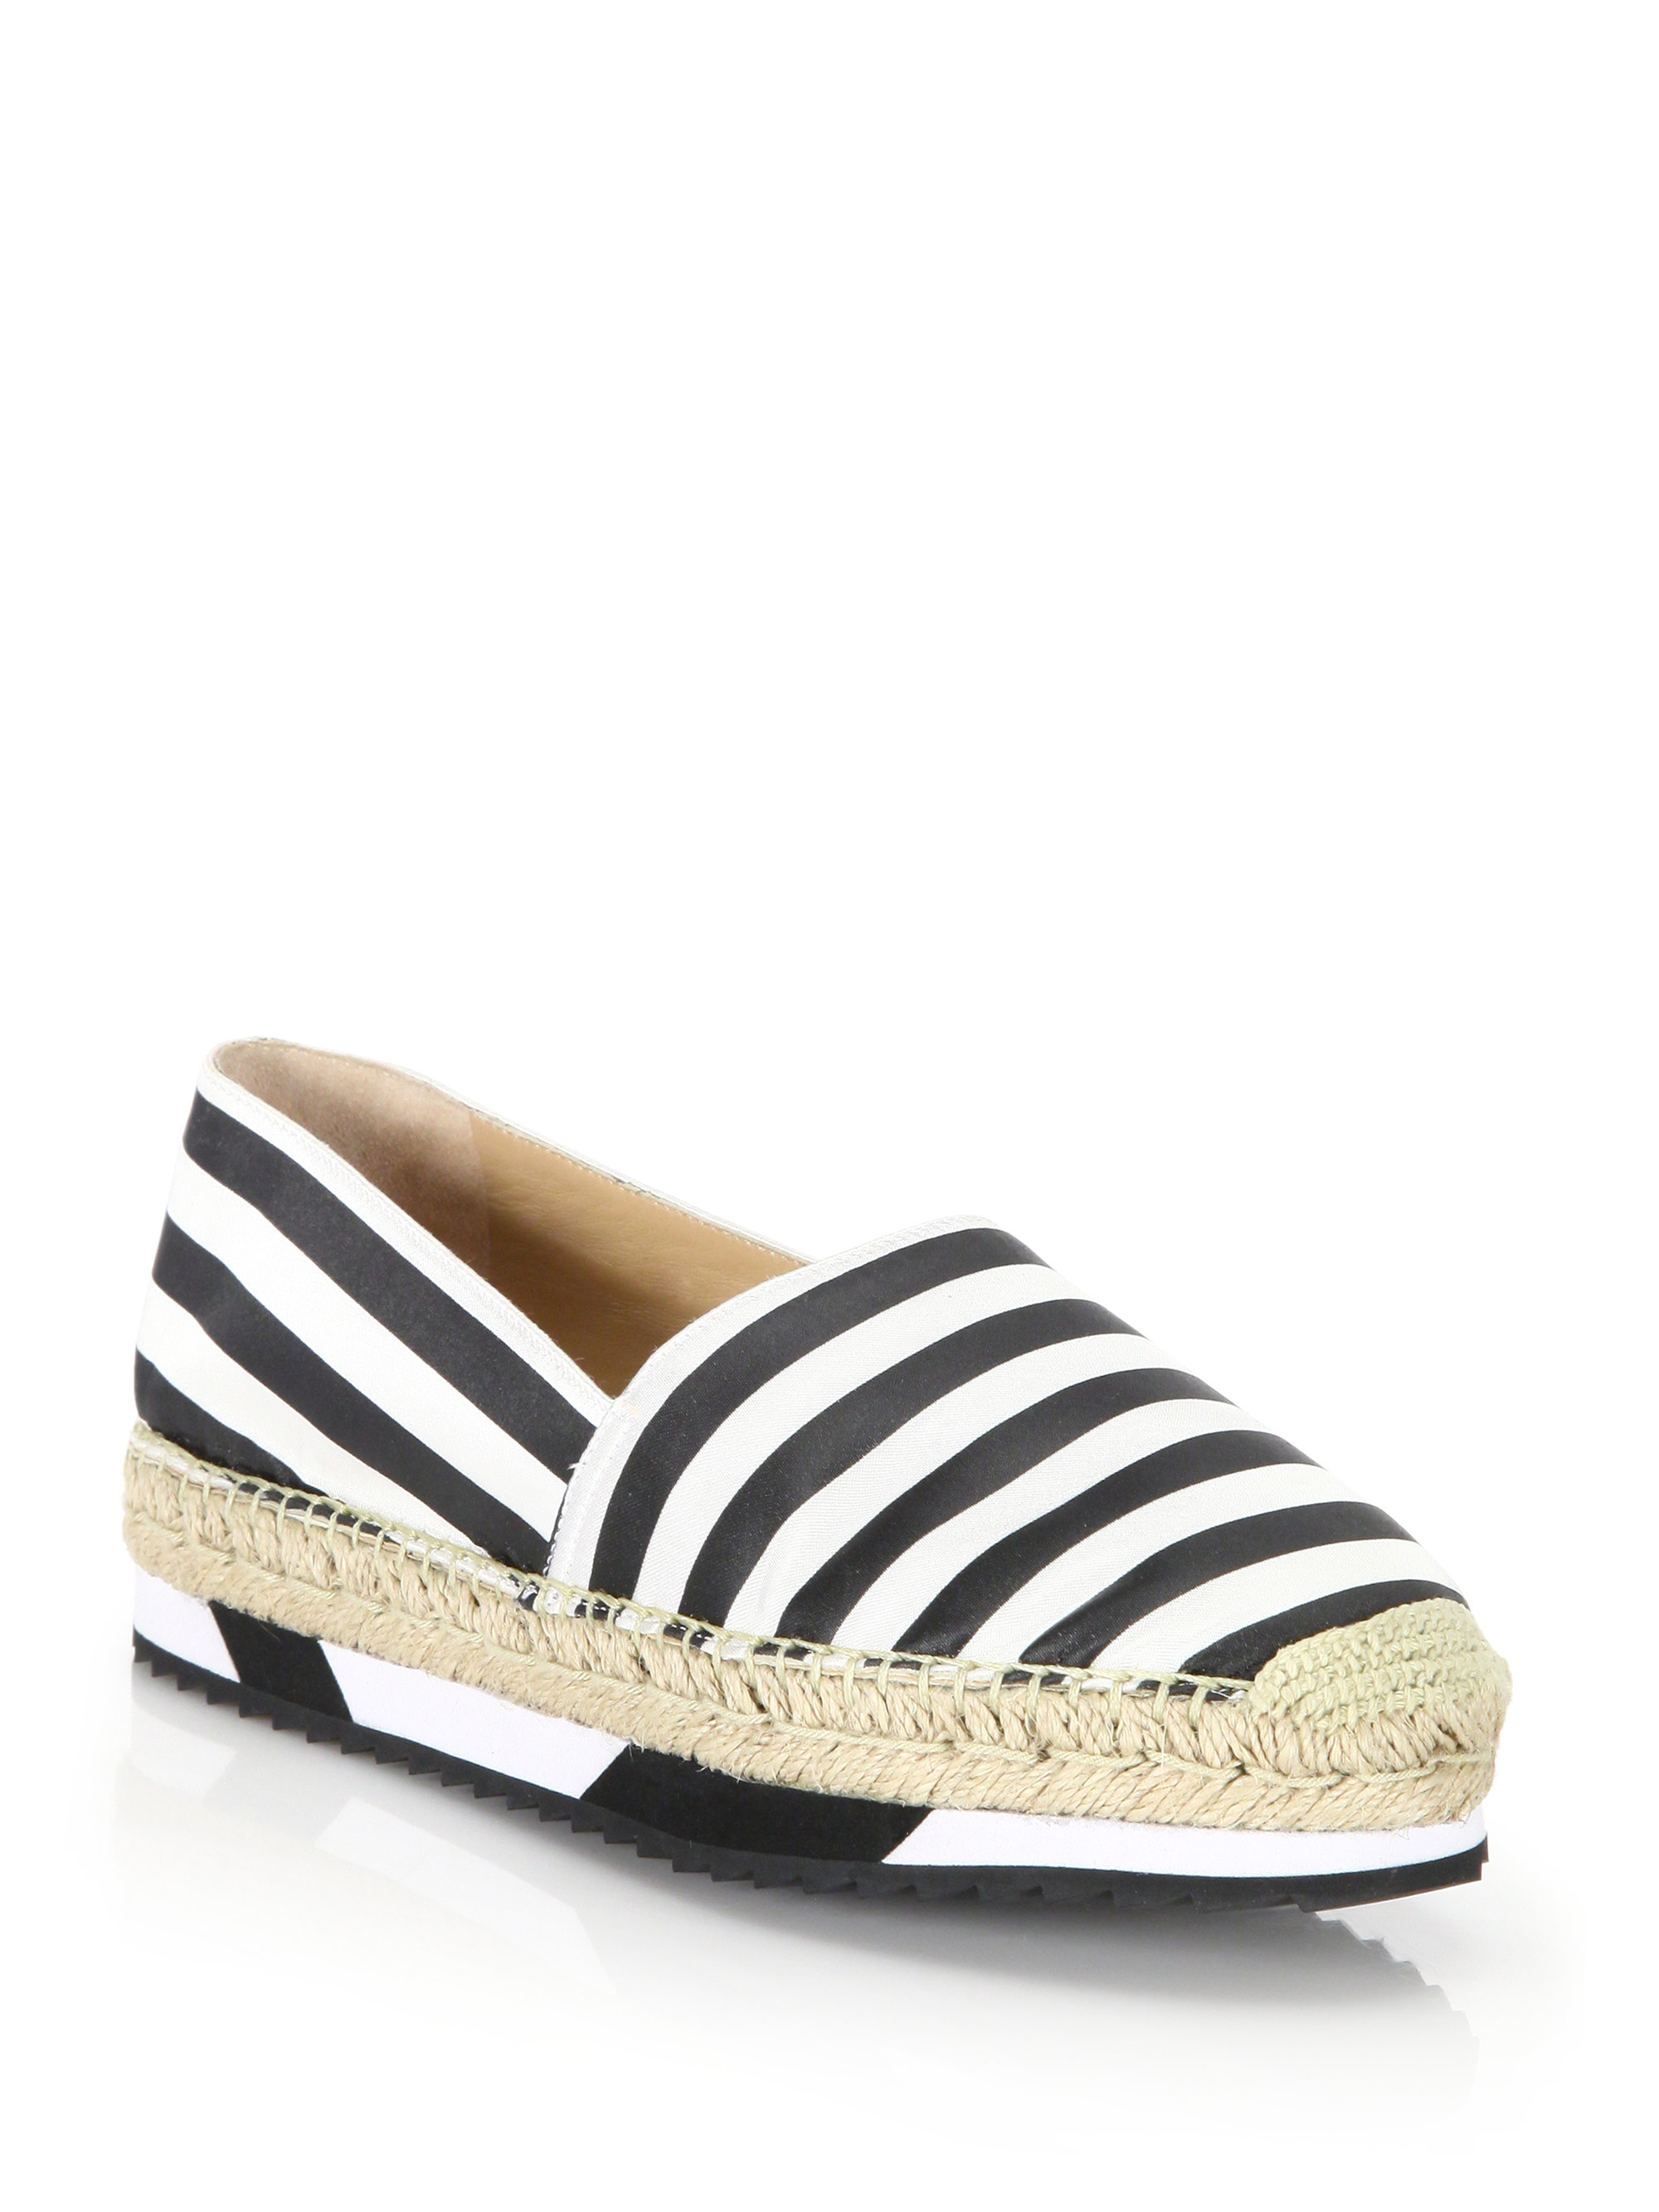 discount codes clearance store sale best sale Diane von Furstenberg Striped Platform Espadrilles amazing price cheap price outlet store ZMyRKwngU6